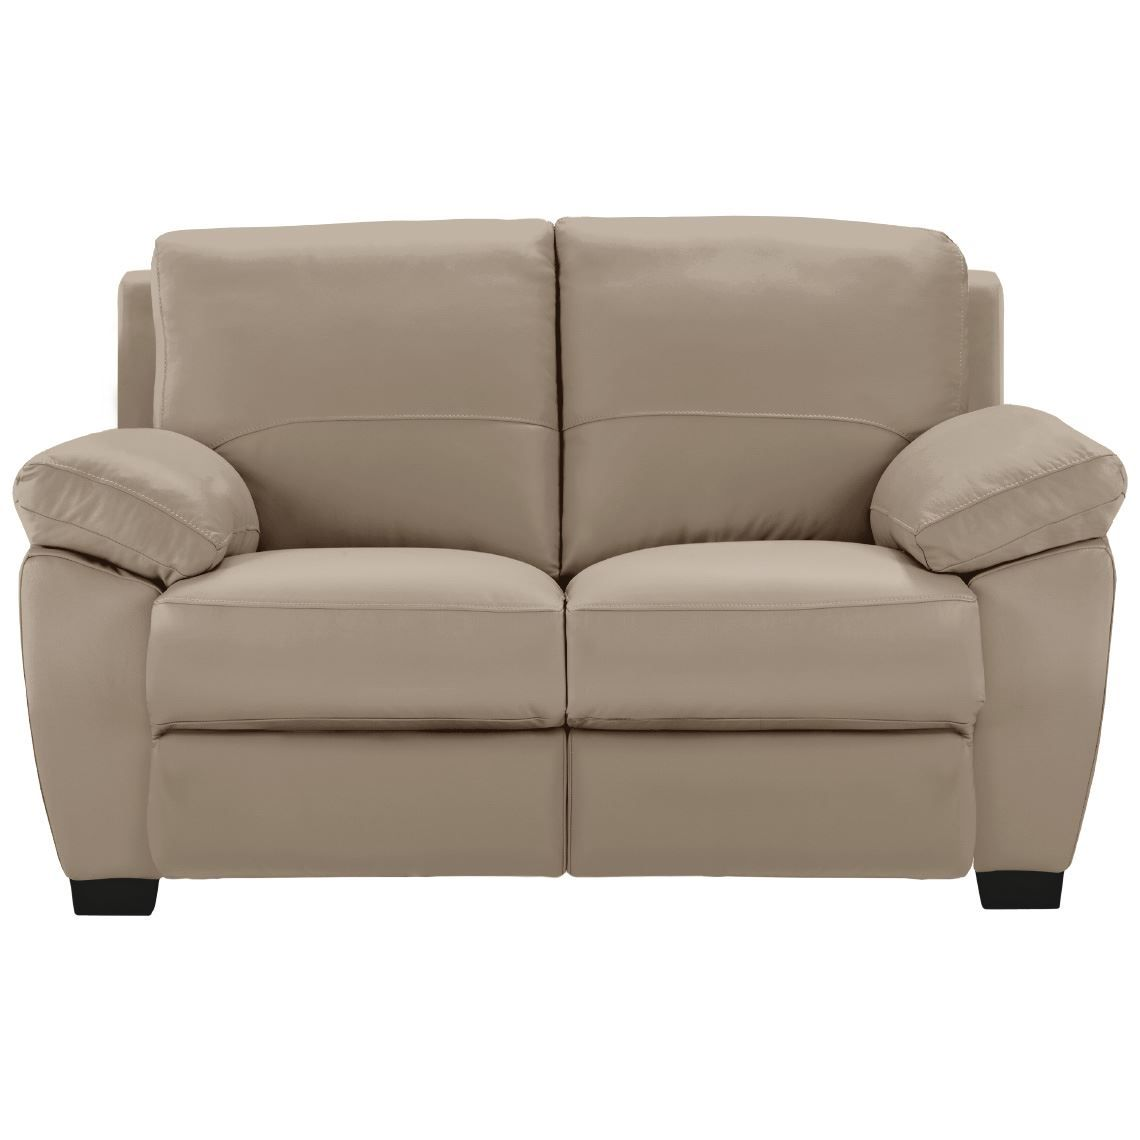 Seat Leather Electric Recliner Sofa